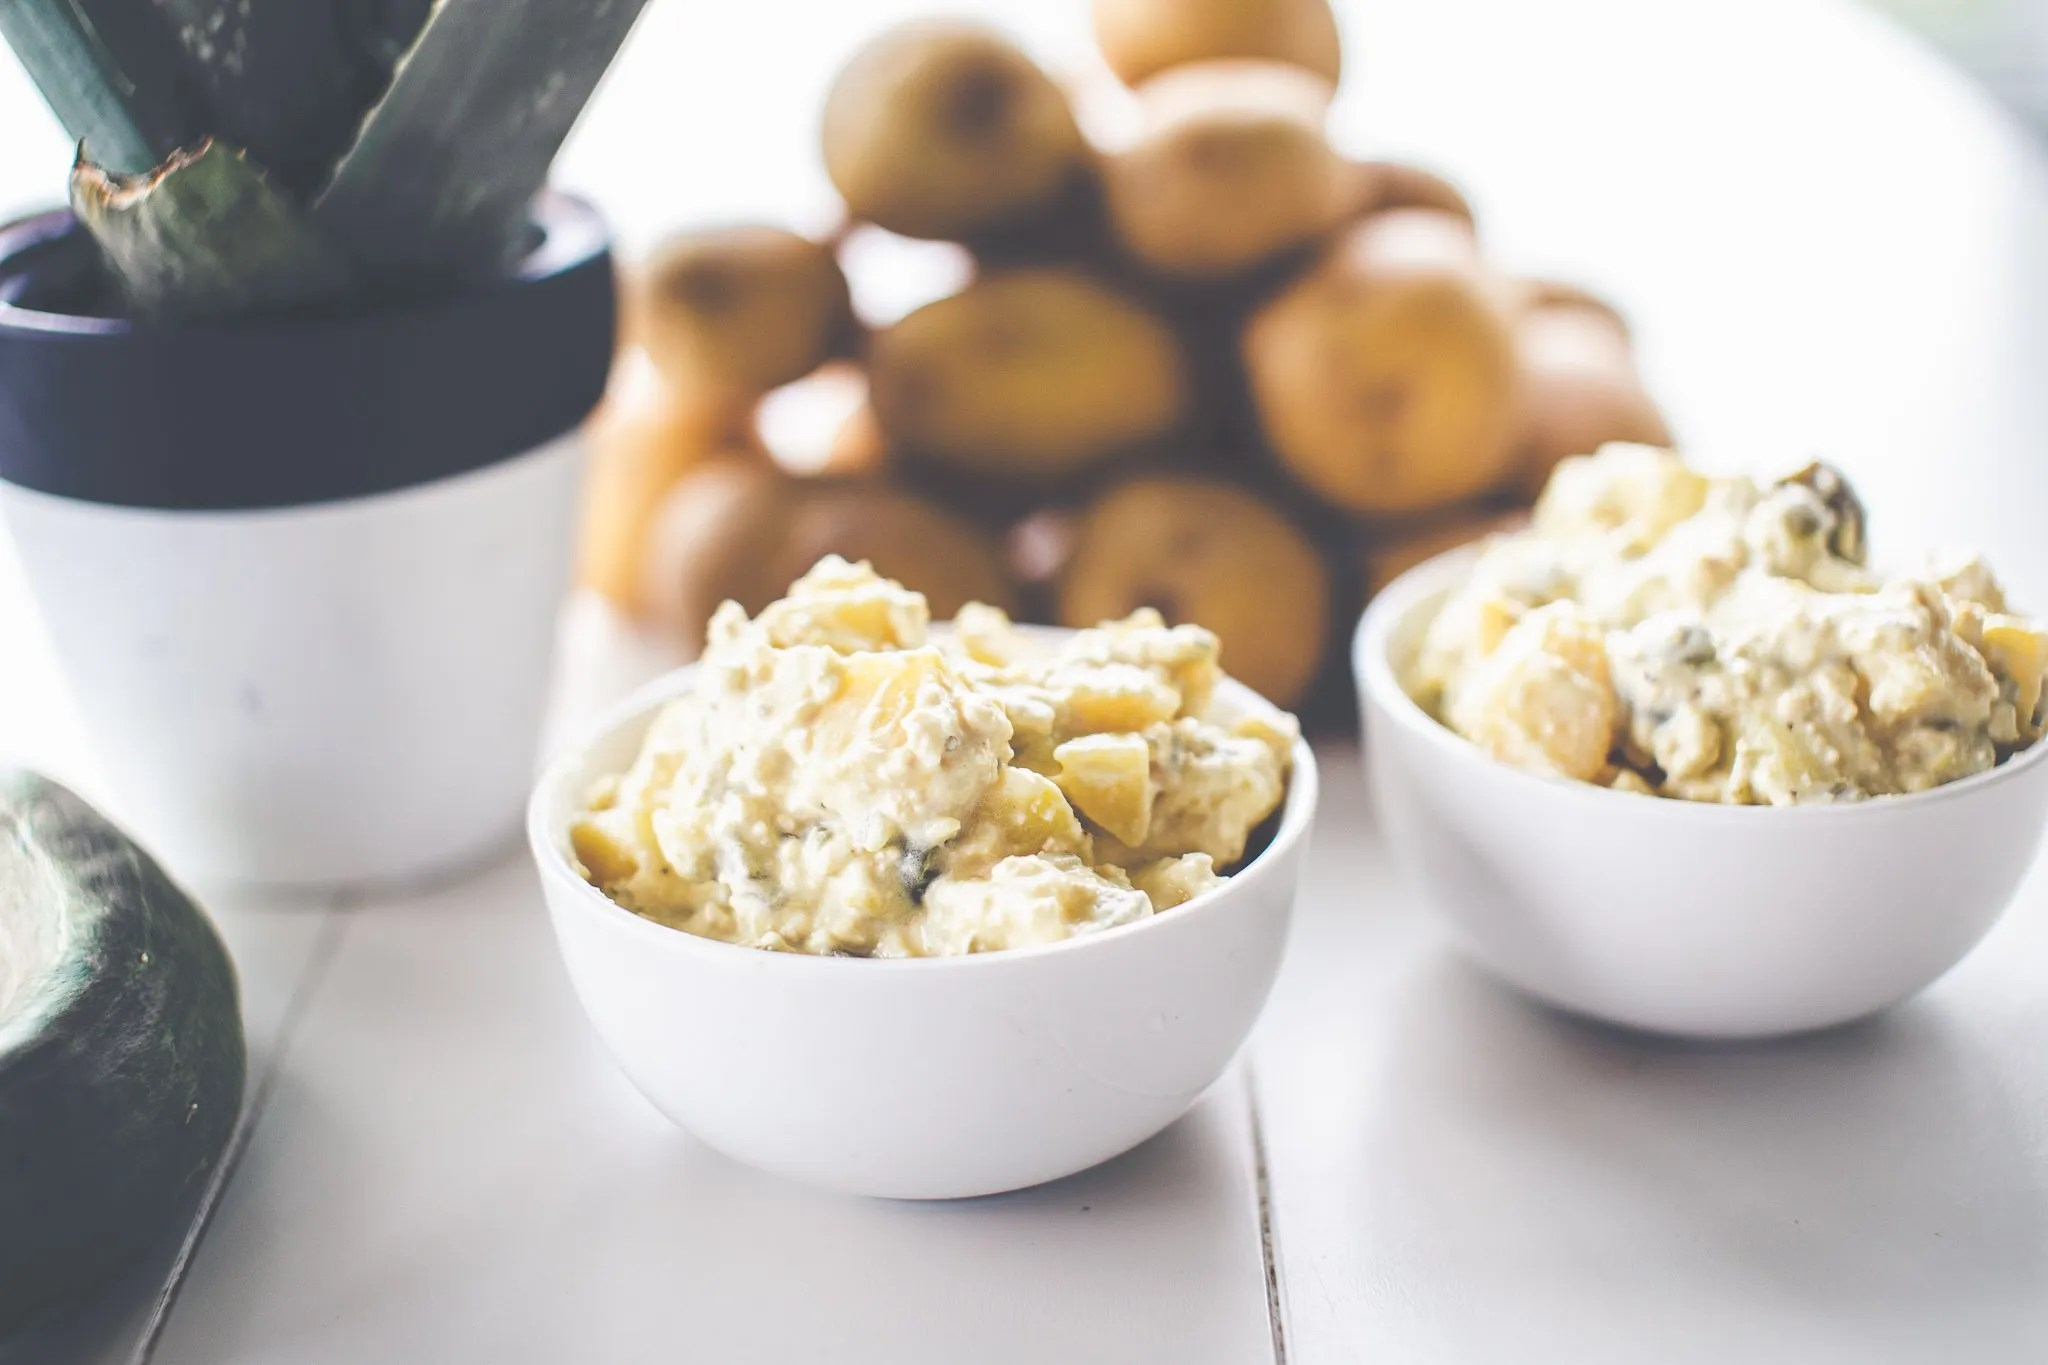 potato salad in white serving bowl on table